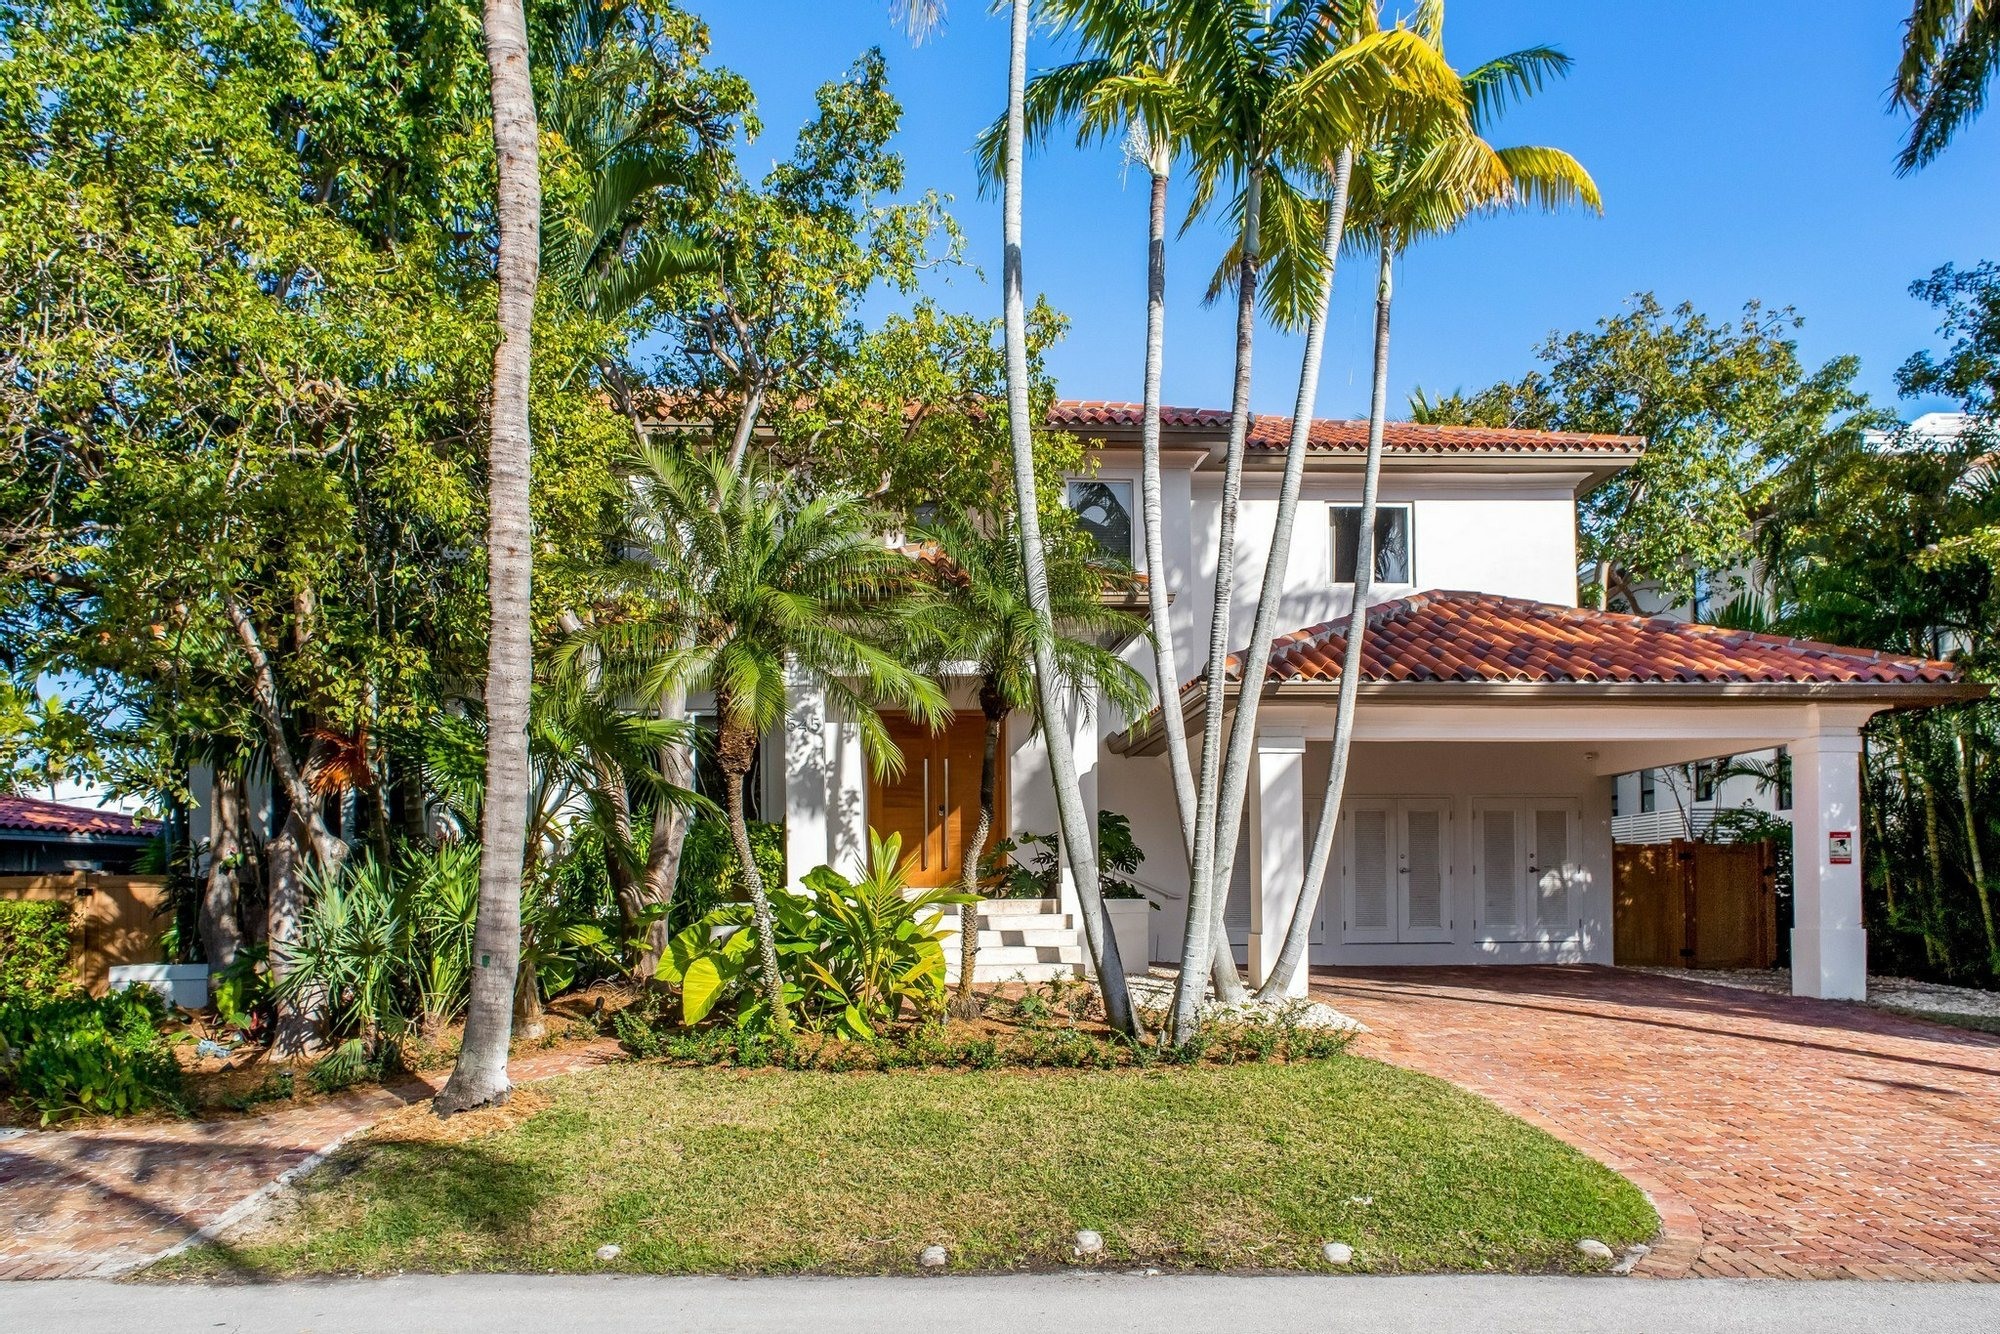 House in Key Biscayne, Florida, United States 1